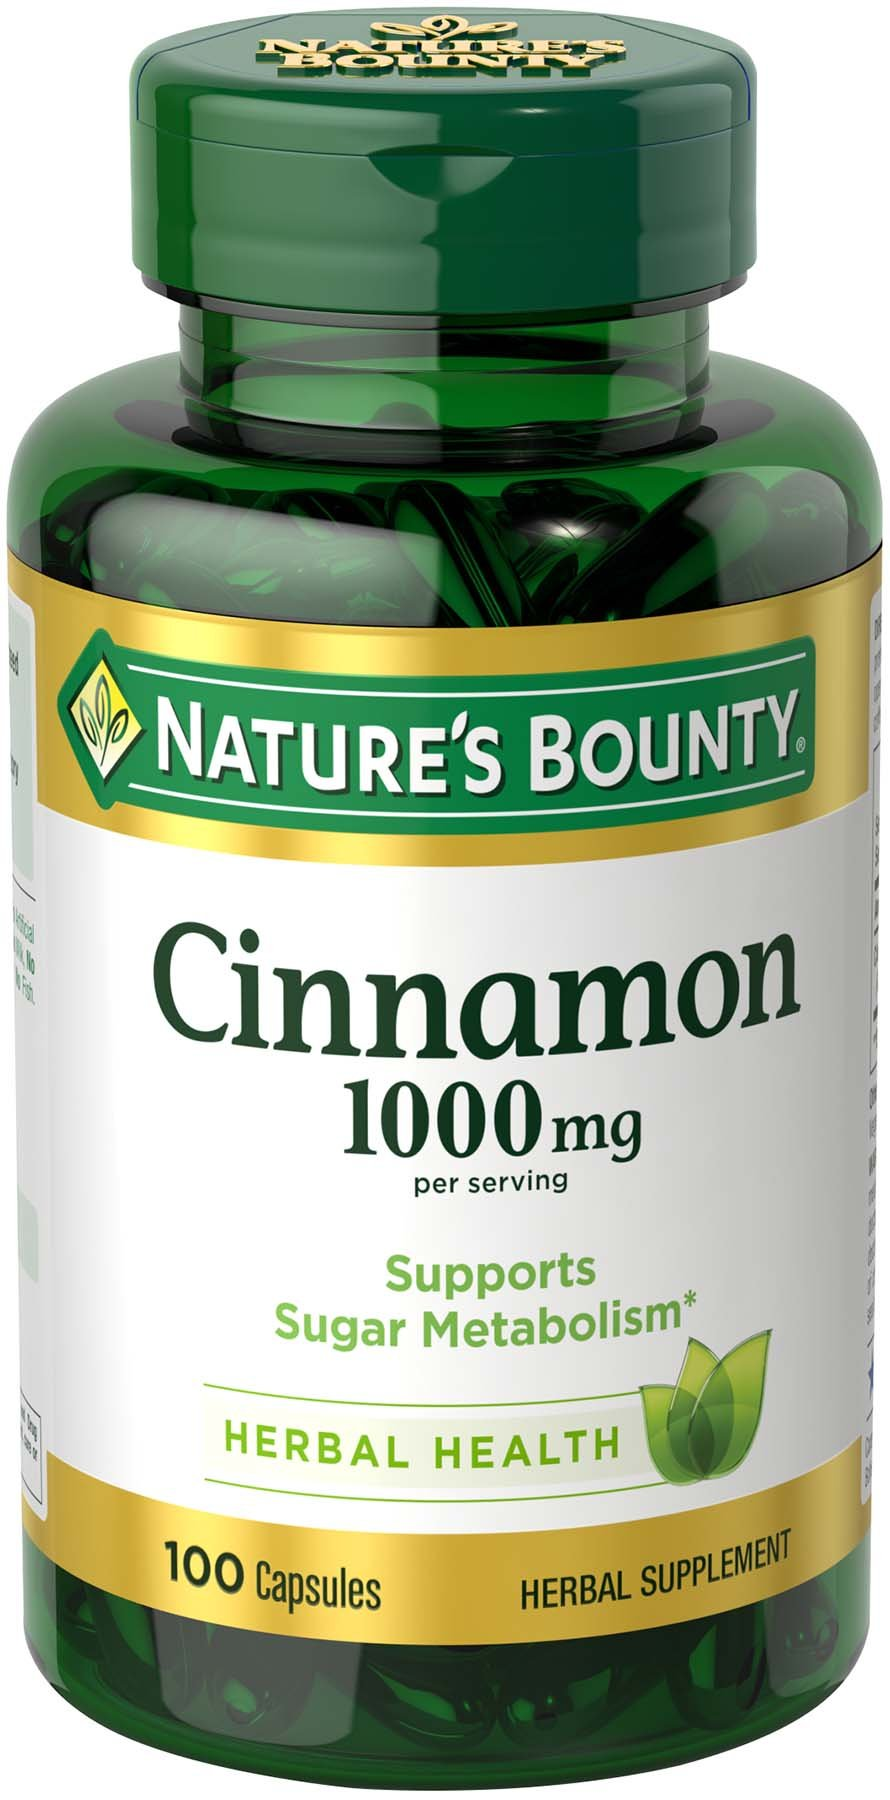 Nature's Bounty Cinnamon 1000 mg Capsules, 100 Count